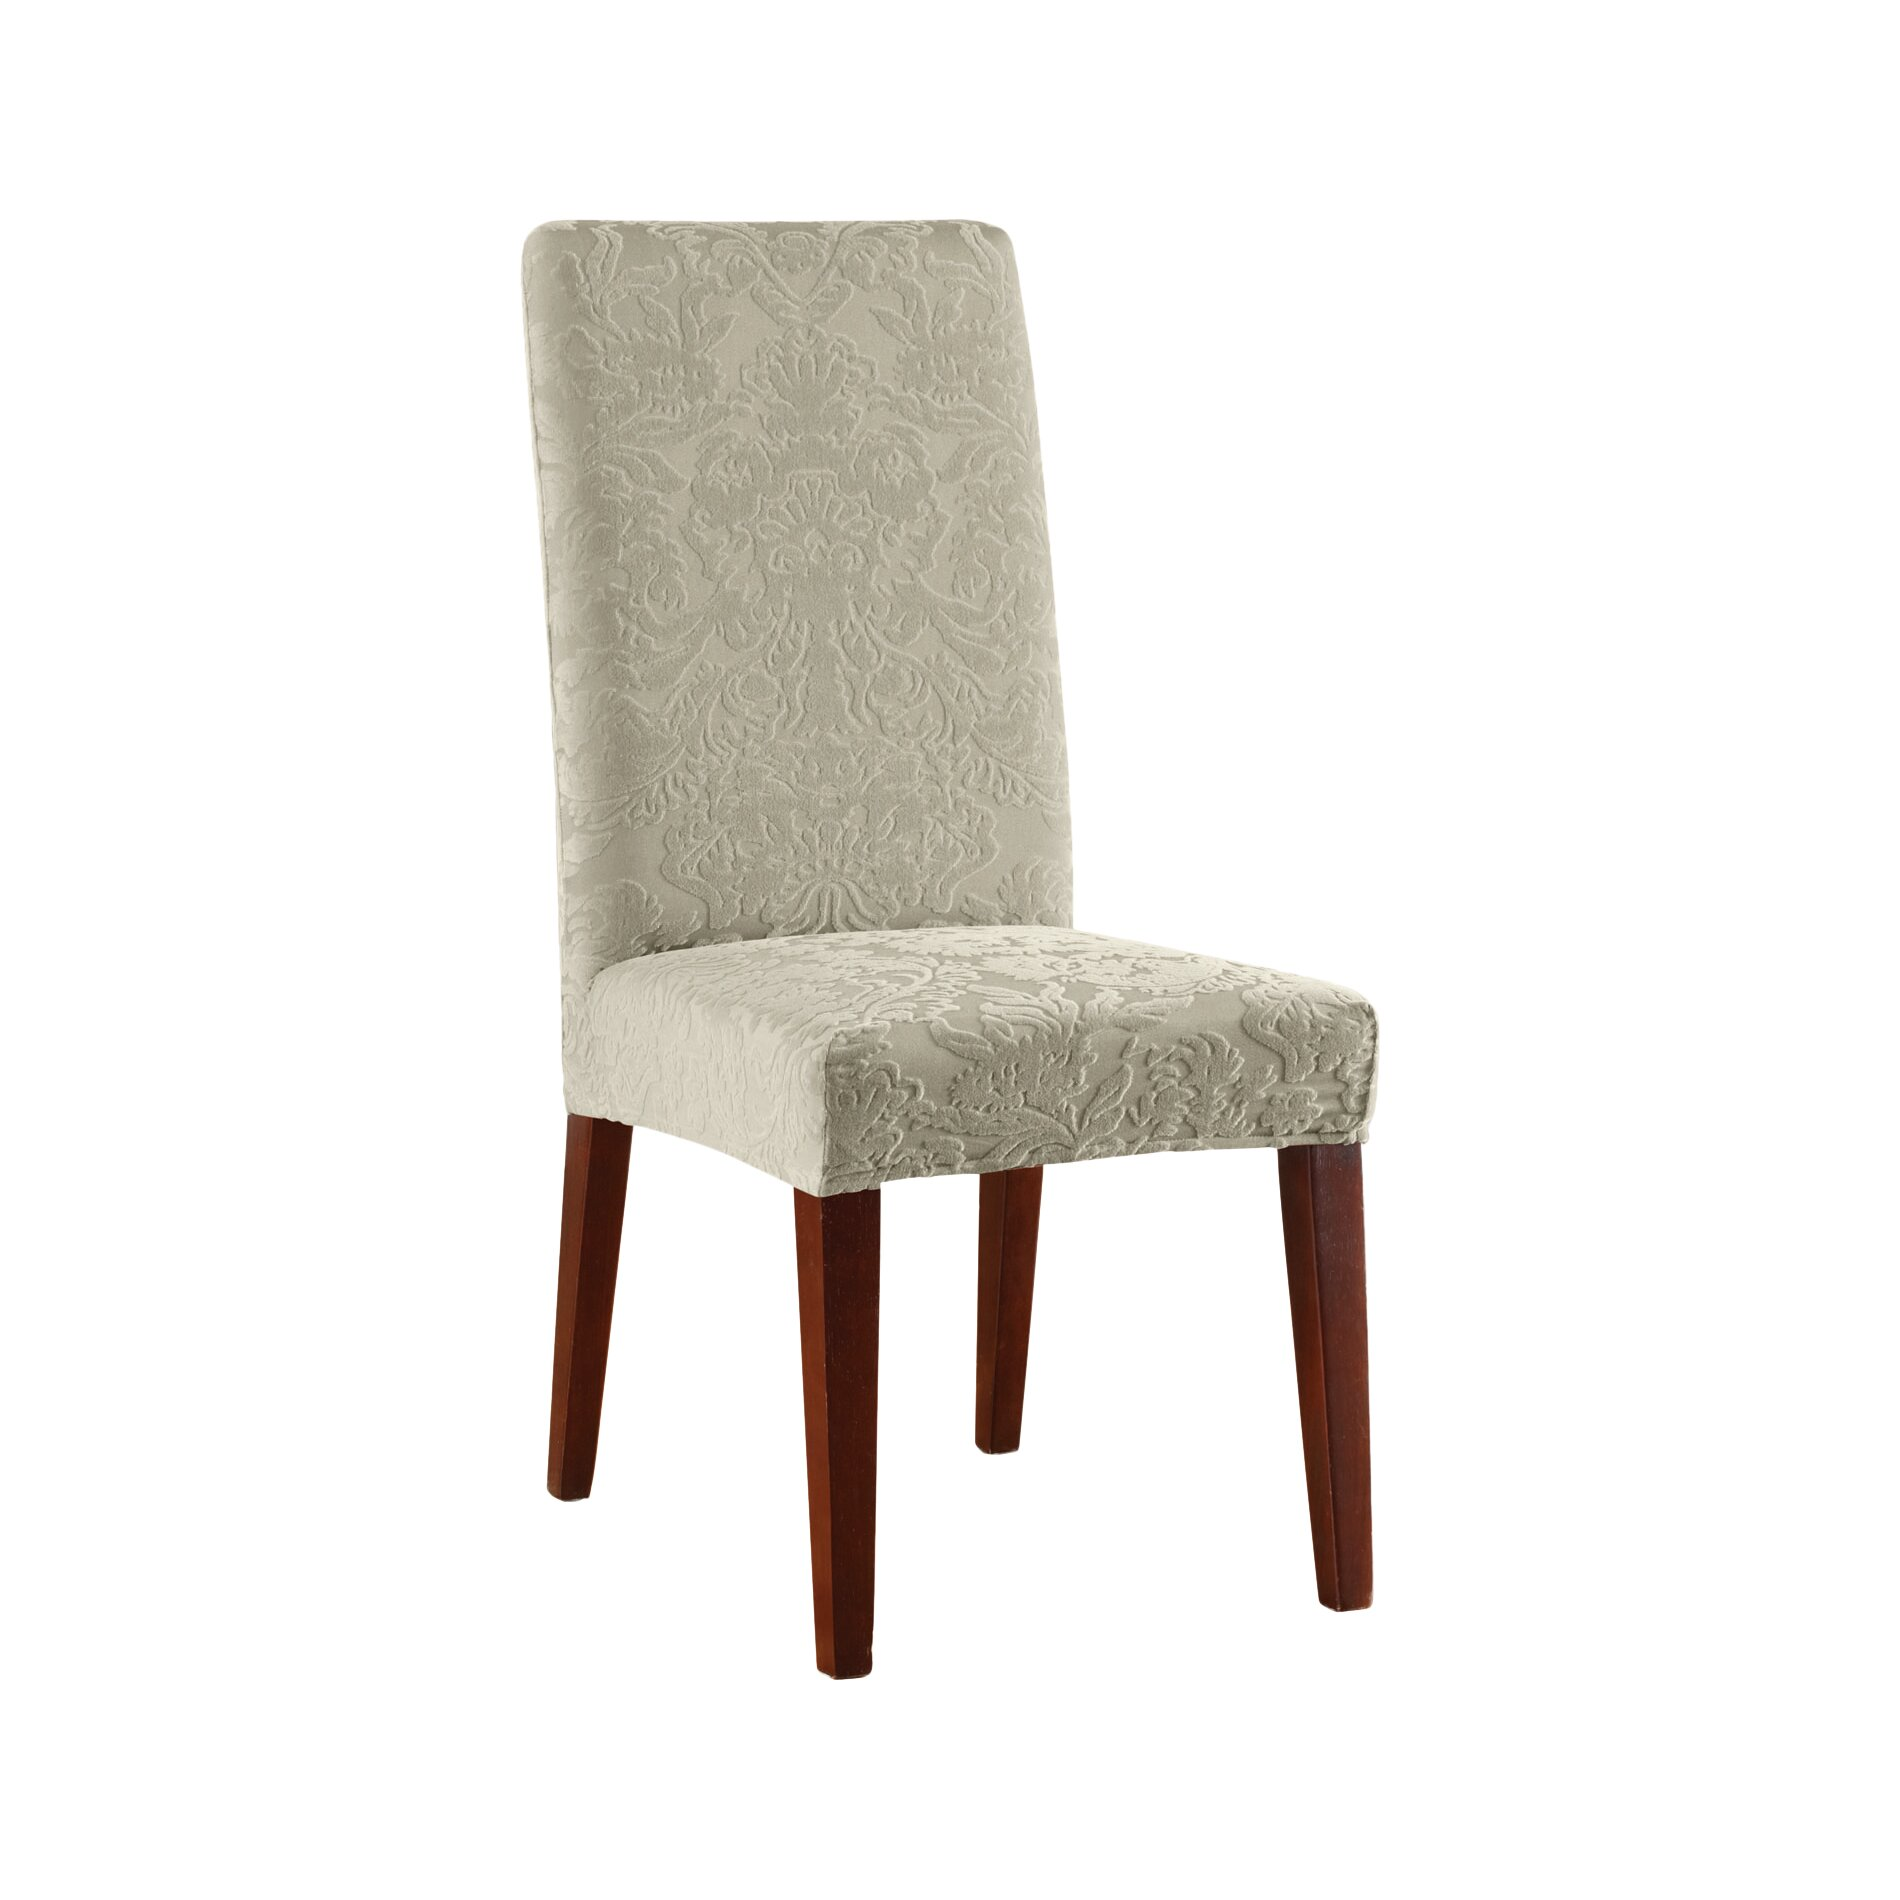 Dining Room Slipcovers Armless Chairs: Sure Fit Stretch Jacquard Damask Dining Chair Slipcover & Reviews